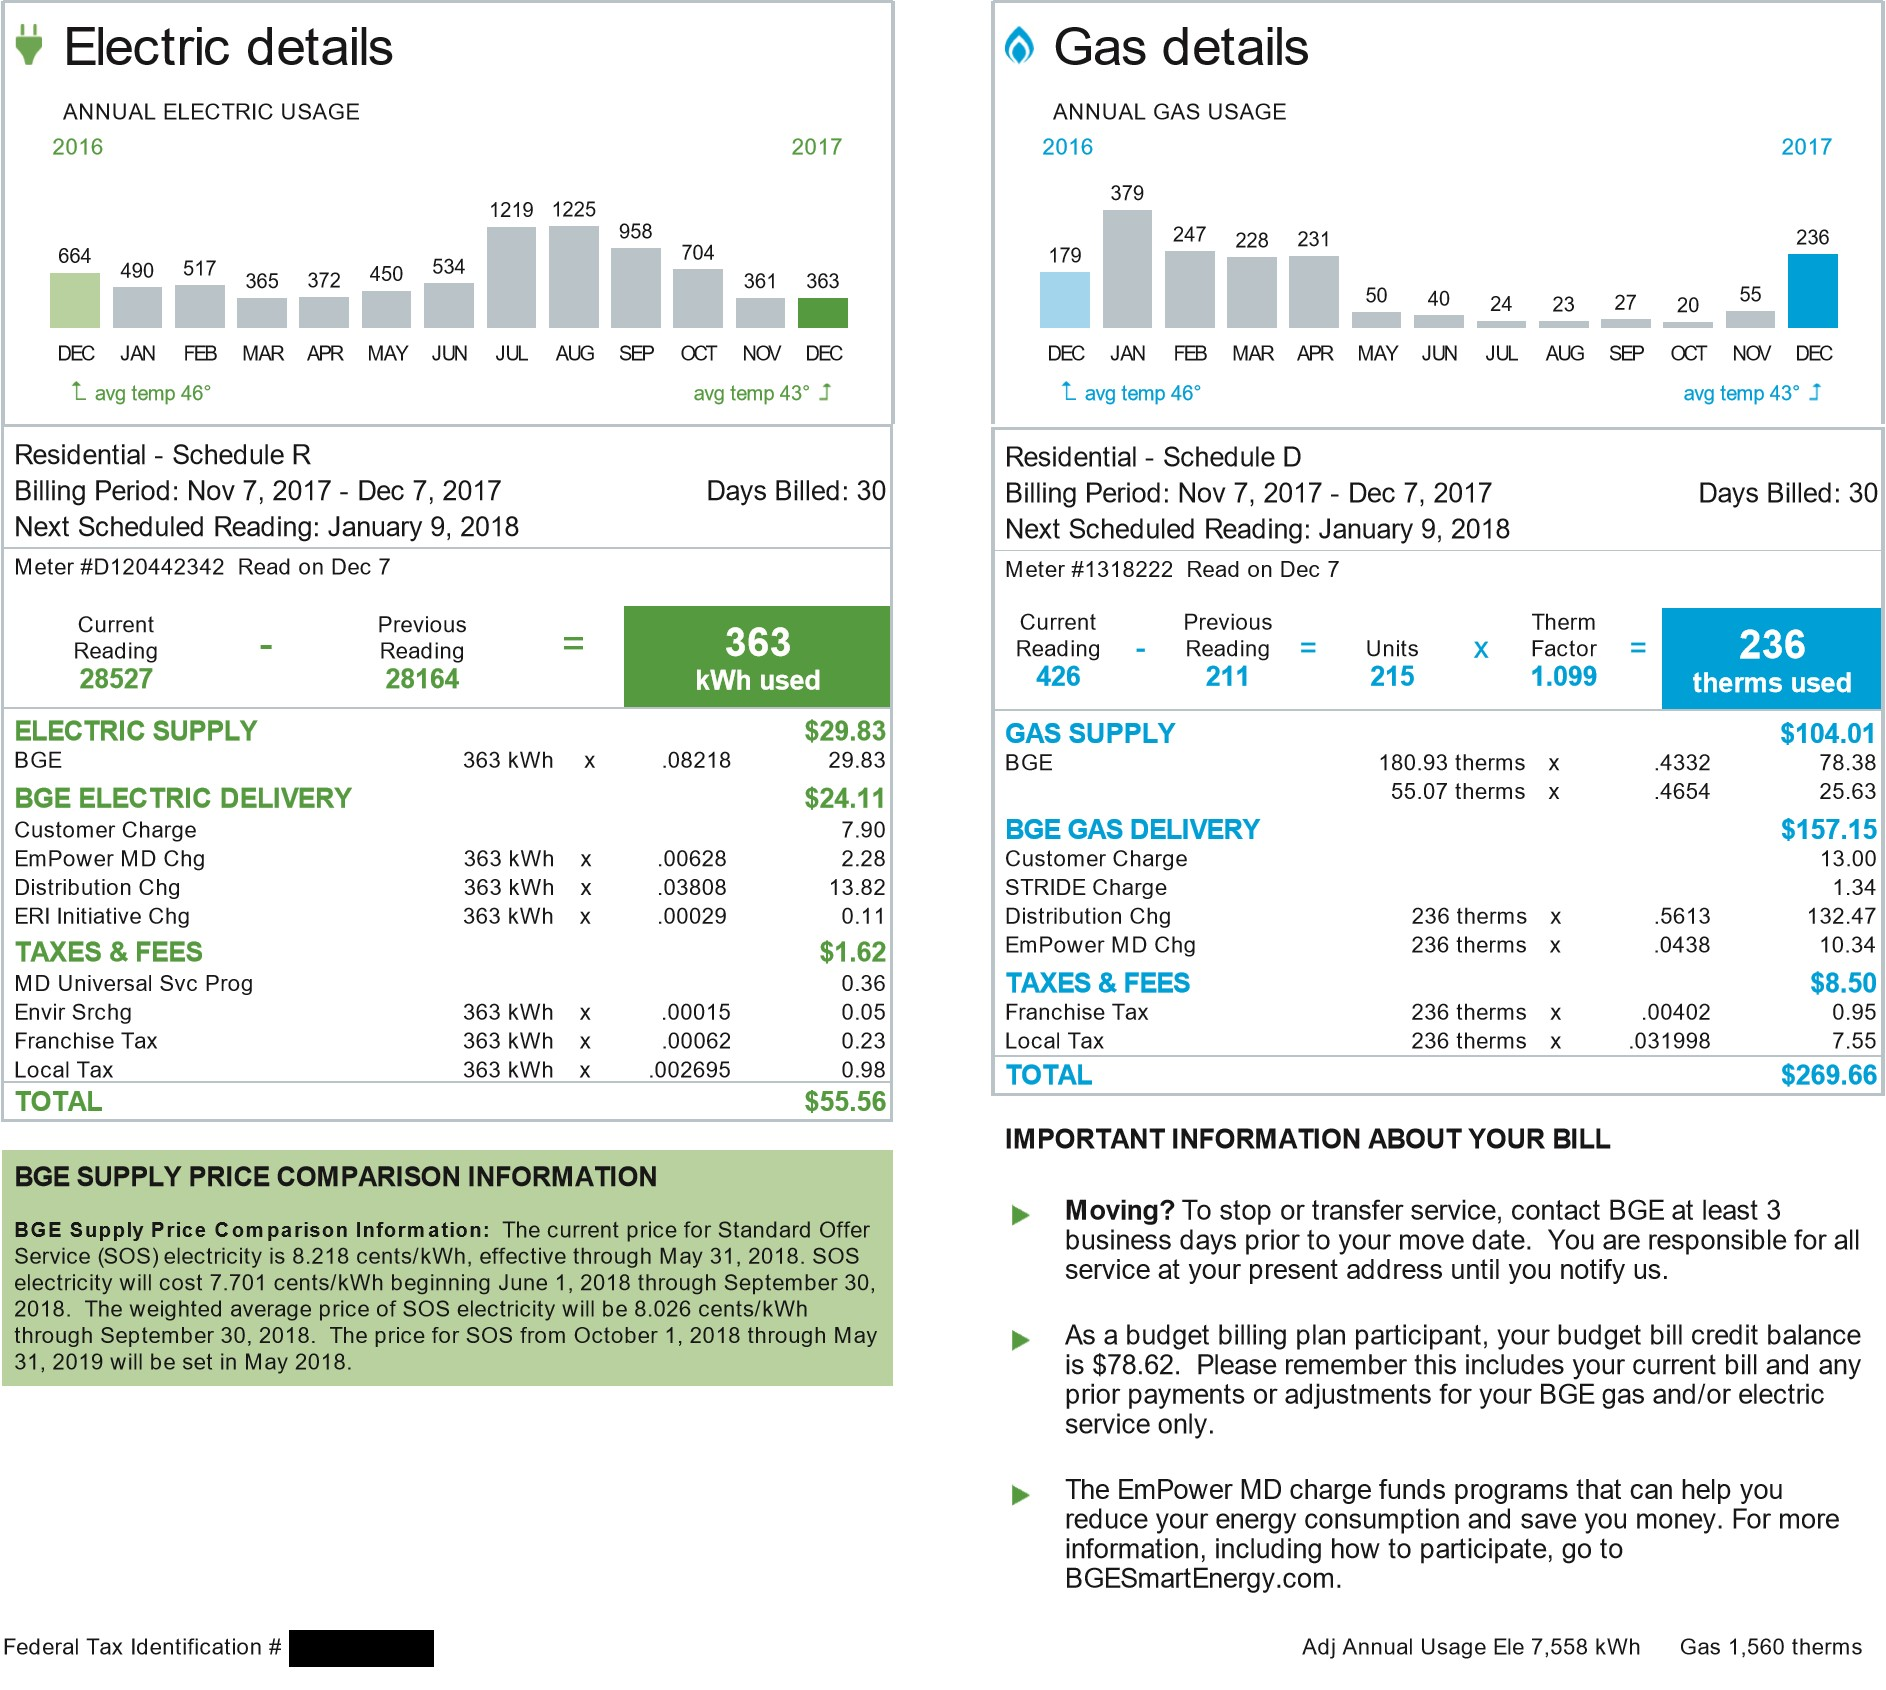 BIll Review - SolEnergy will analyze your energy bill to determine the amount of solar needed to offset your annual consumption.  Here we also expose the prices your are being charged by your utility company. In one year this customer bought $1,327.35 worth of electricity. Subsequently they were forced to pay $1,593.47 in DELIVERY CHARGES & FEES.Totaling $2,920.82Our team of experts will show you how to get that number down to $0.